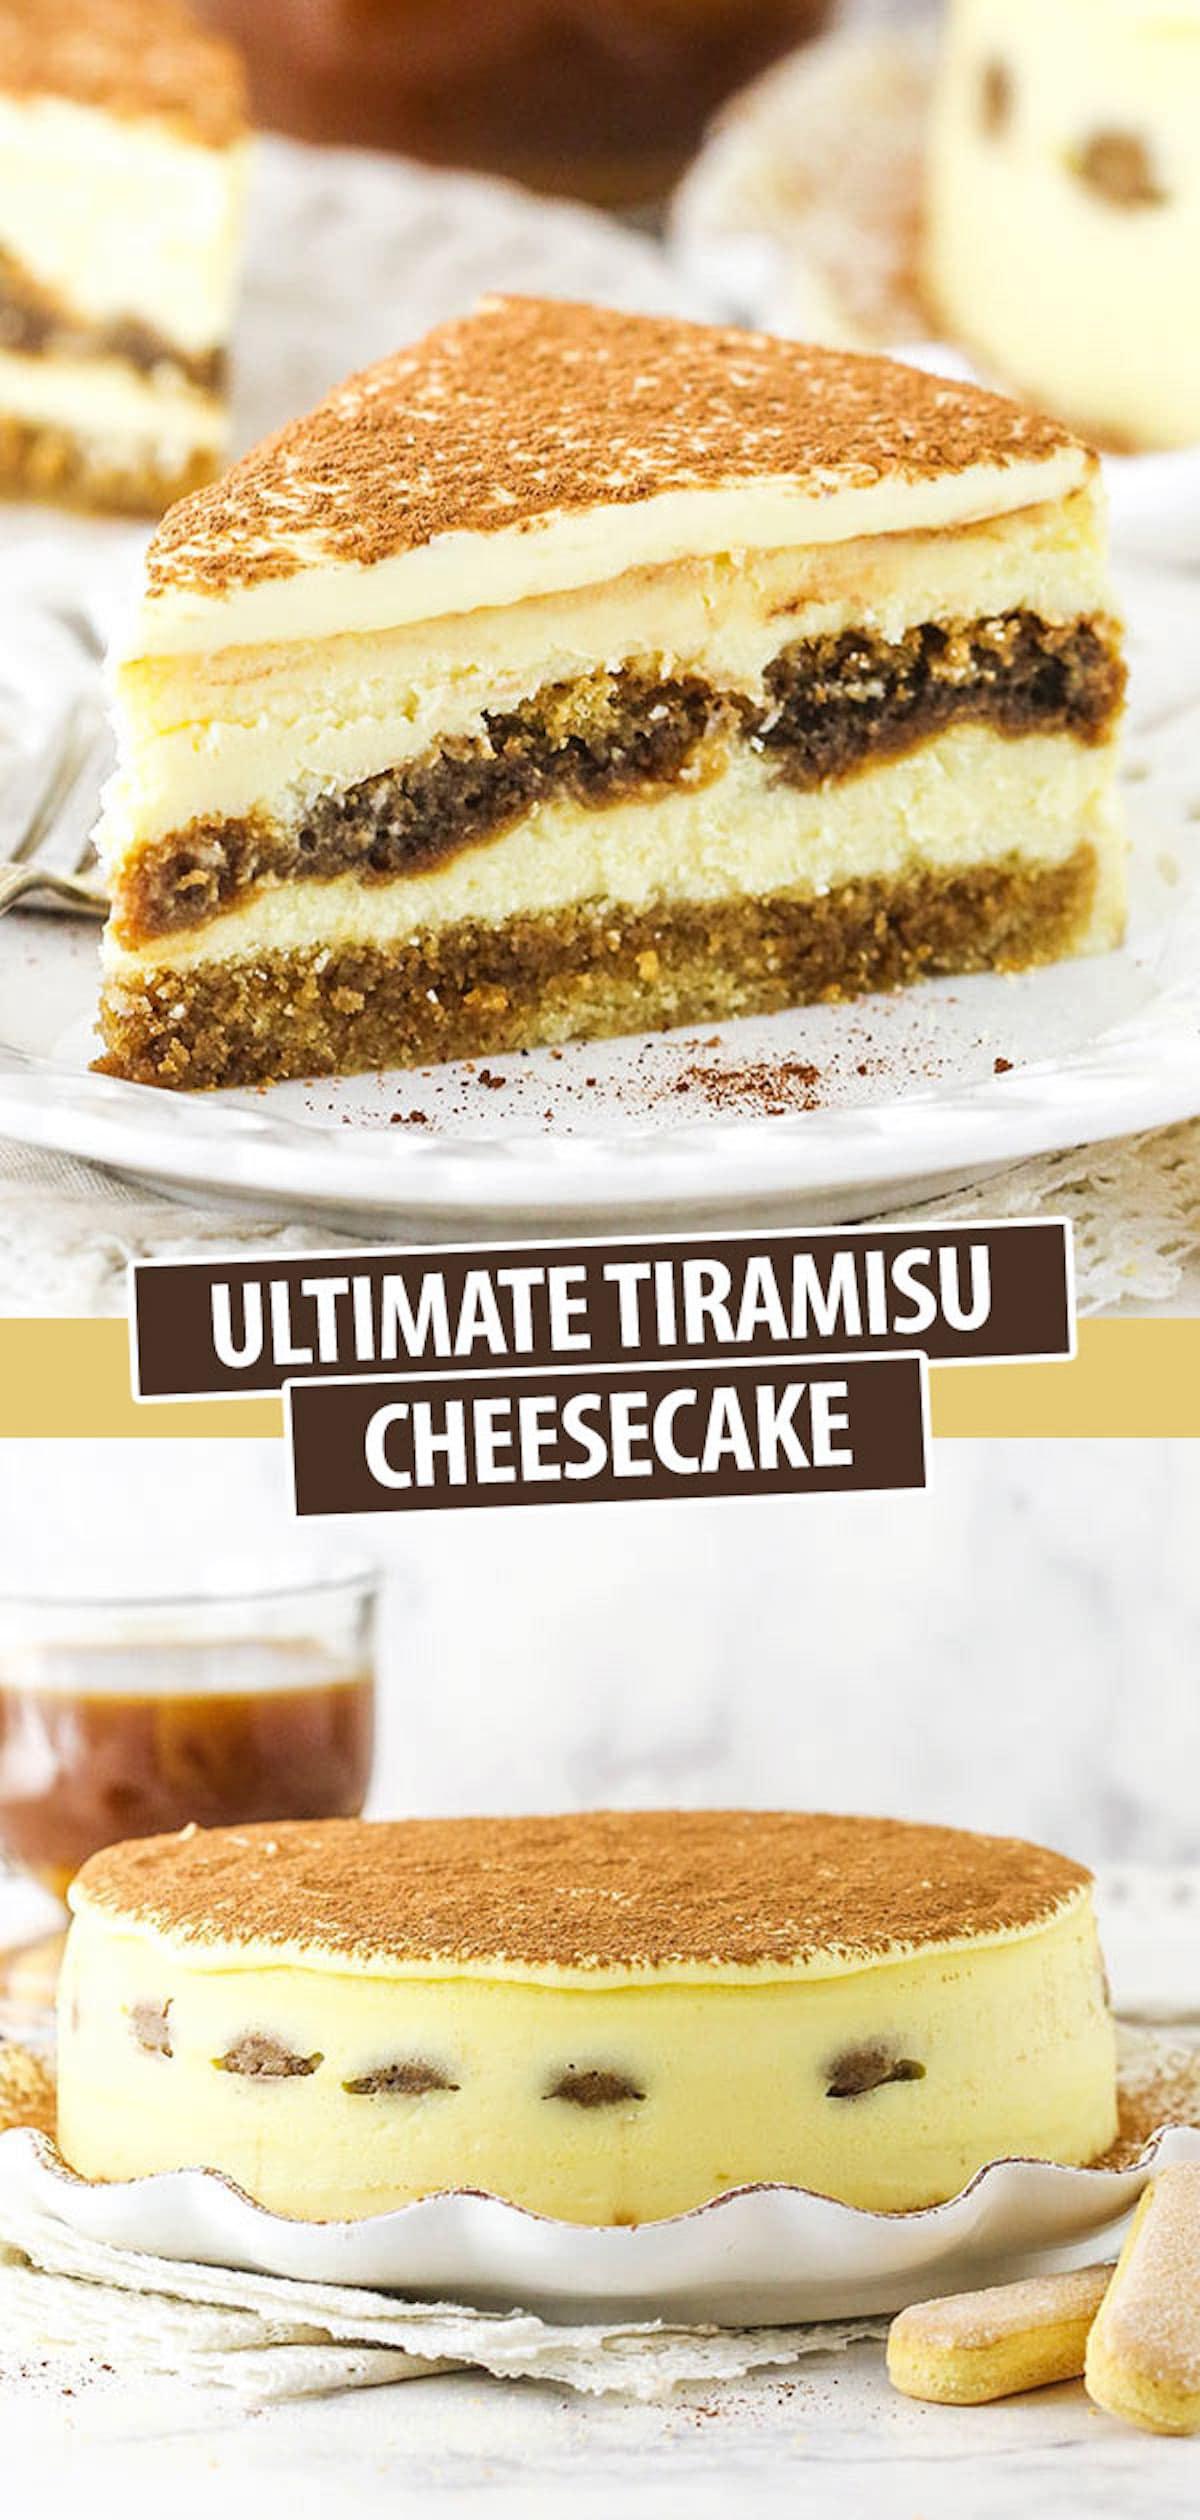 A Collage of Two Images of Tiramisu Cake – One Showing a Single Slice and One Showing the Whole Cake